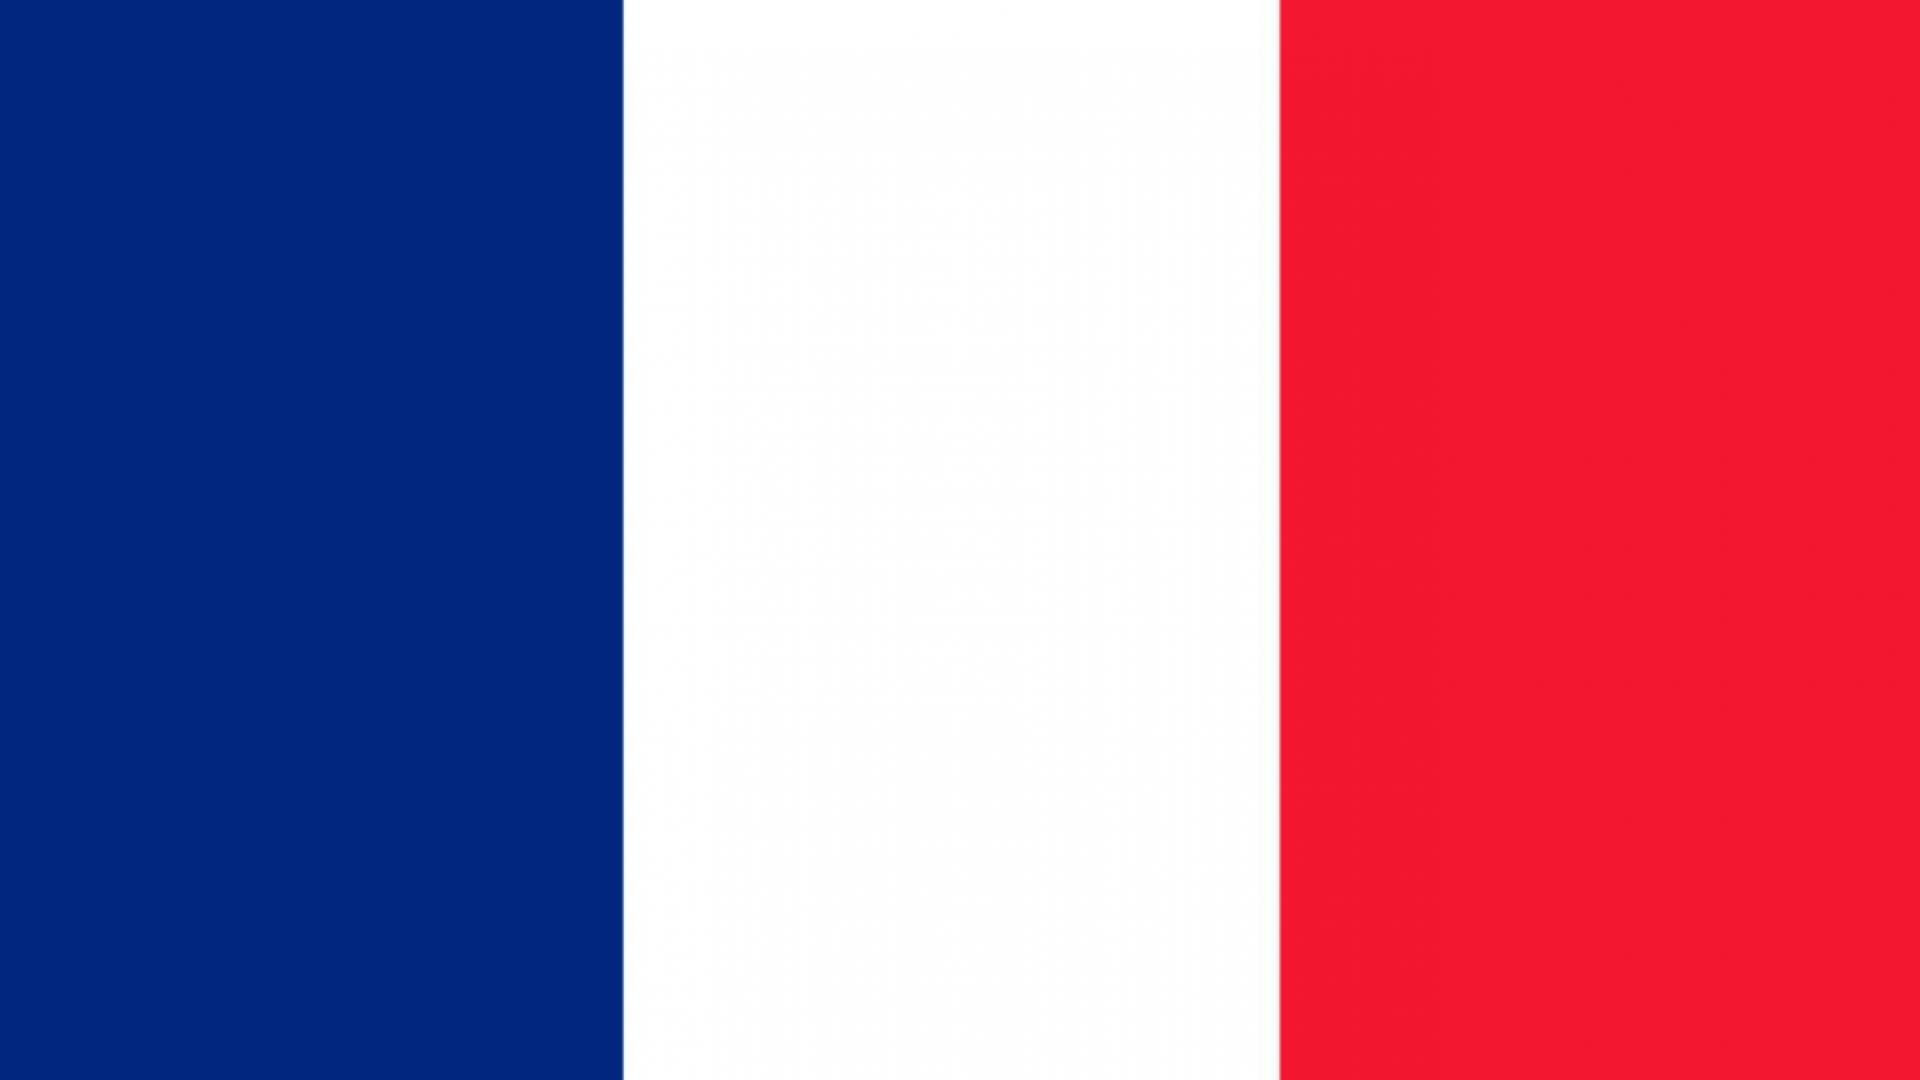 france flag wallpaper high definition high quality